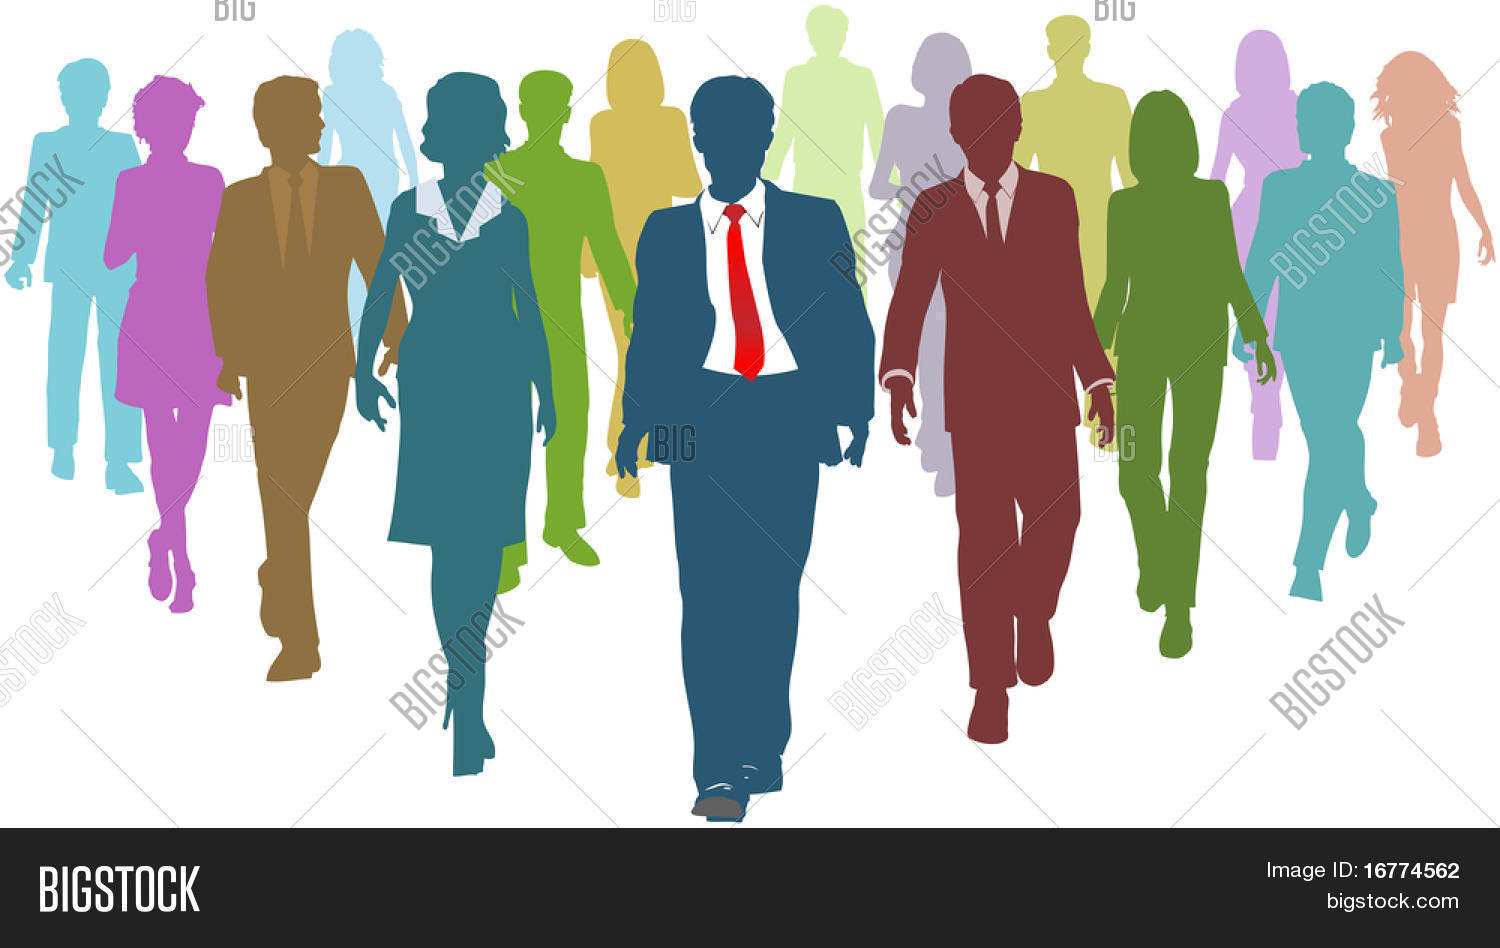 diverse business people human resources silhouettes follow a team diverse business people human resources silhouettes follow a team leader